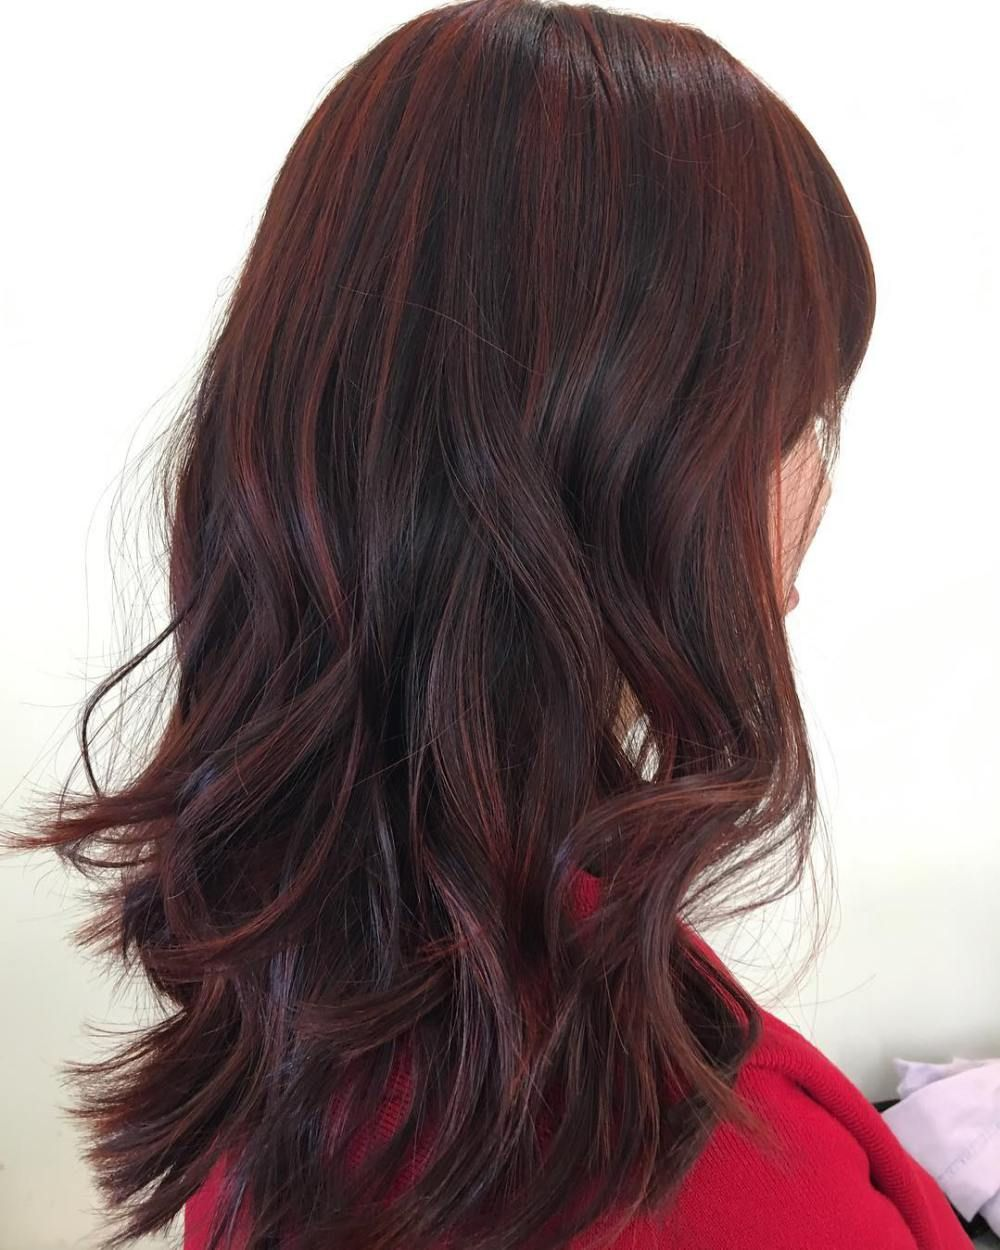 45 Shades of Burgundy Hair: Dark Burgundy, Maroon ...